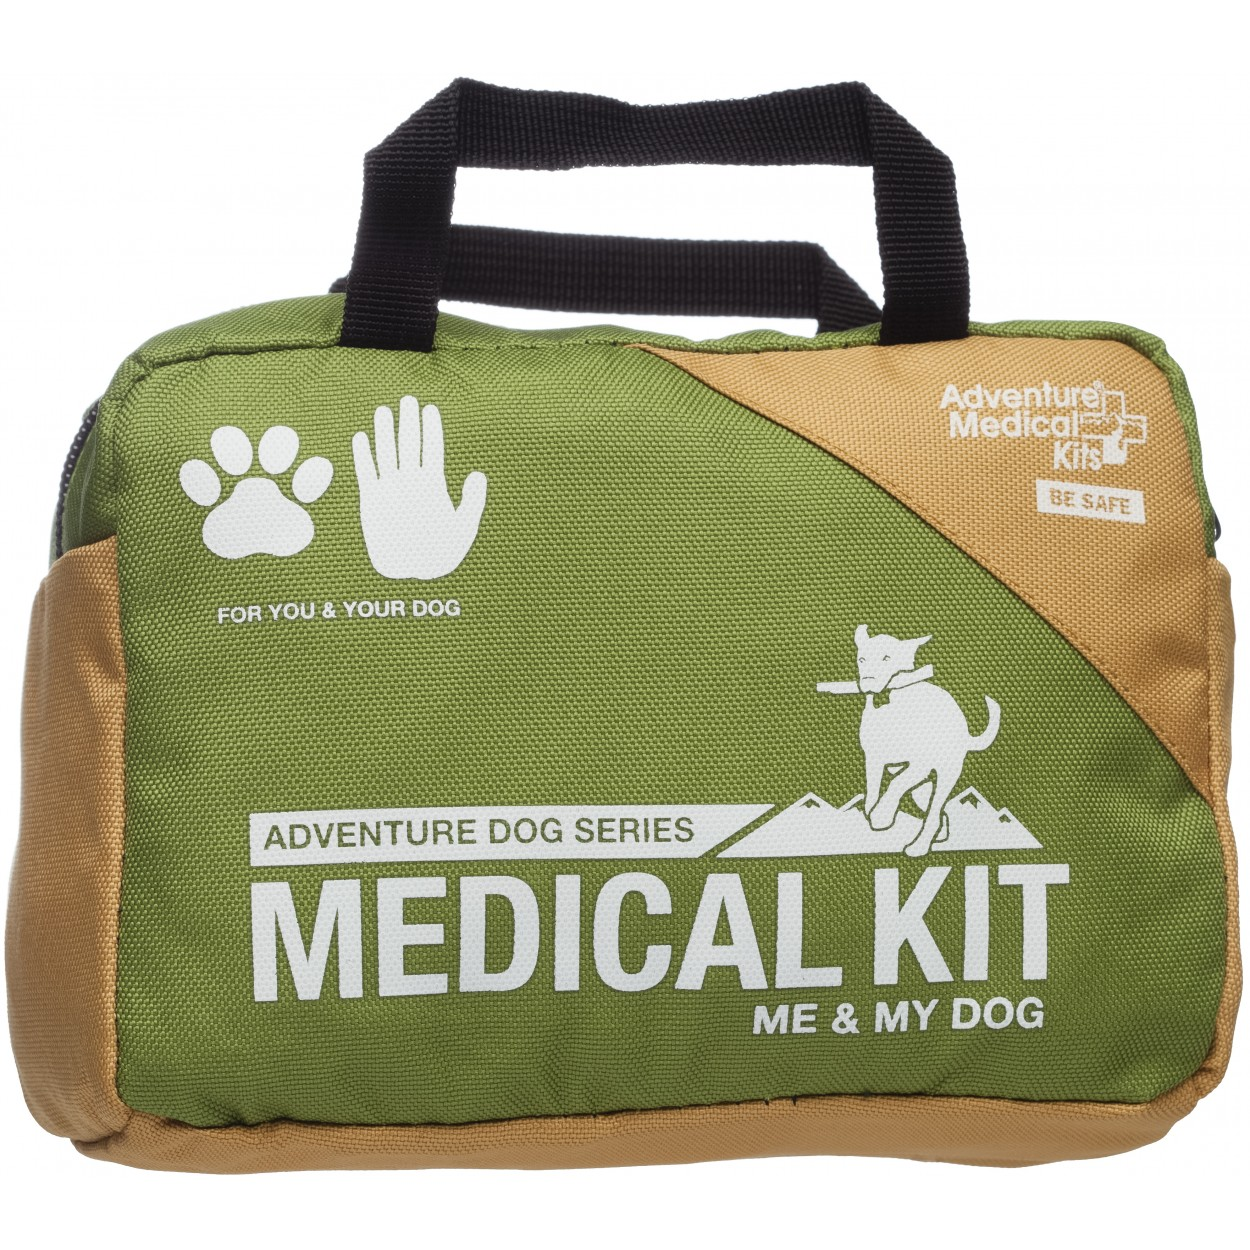 Me & My Dog First Aid Kit, by Adventure Medical Kits